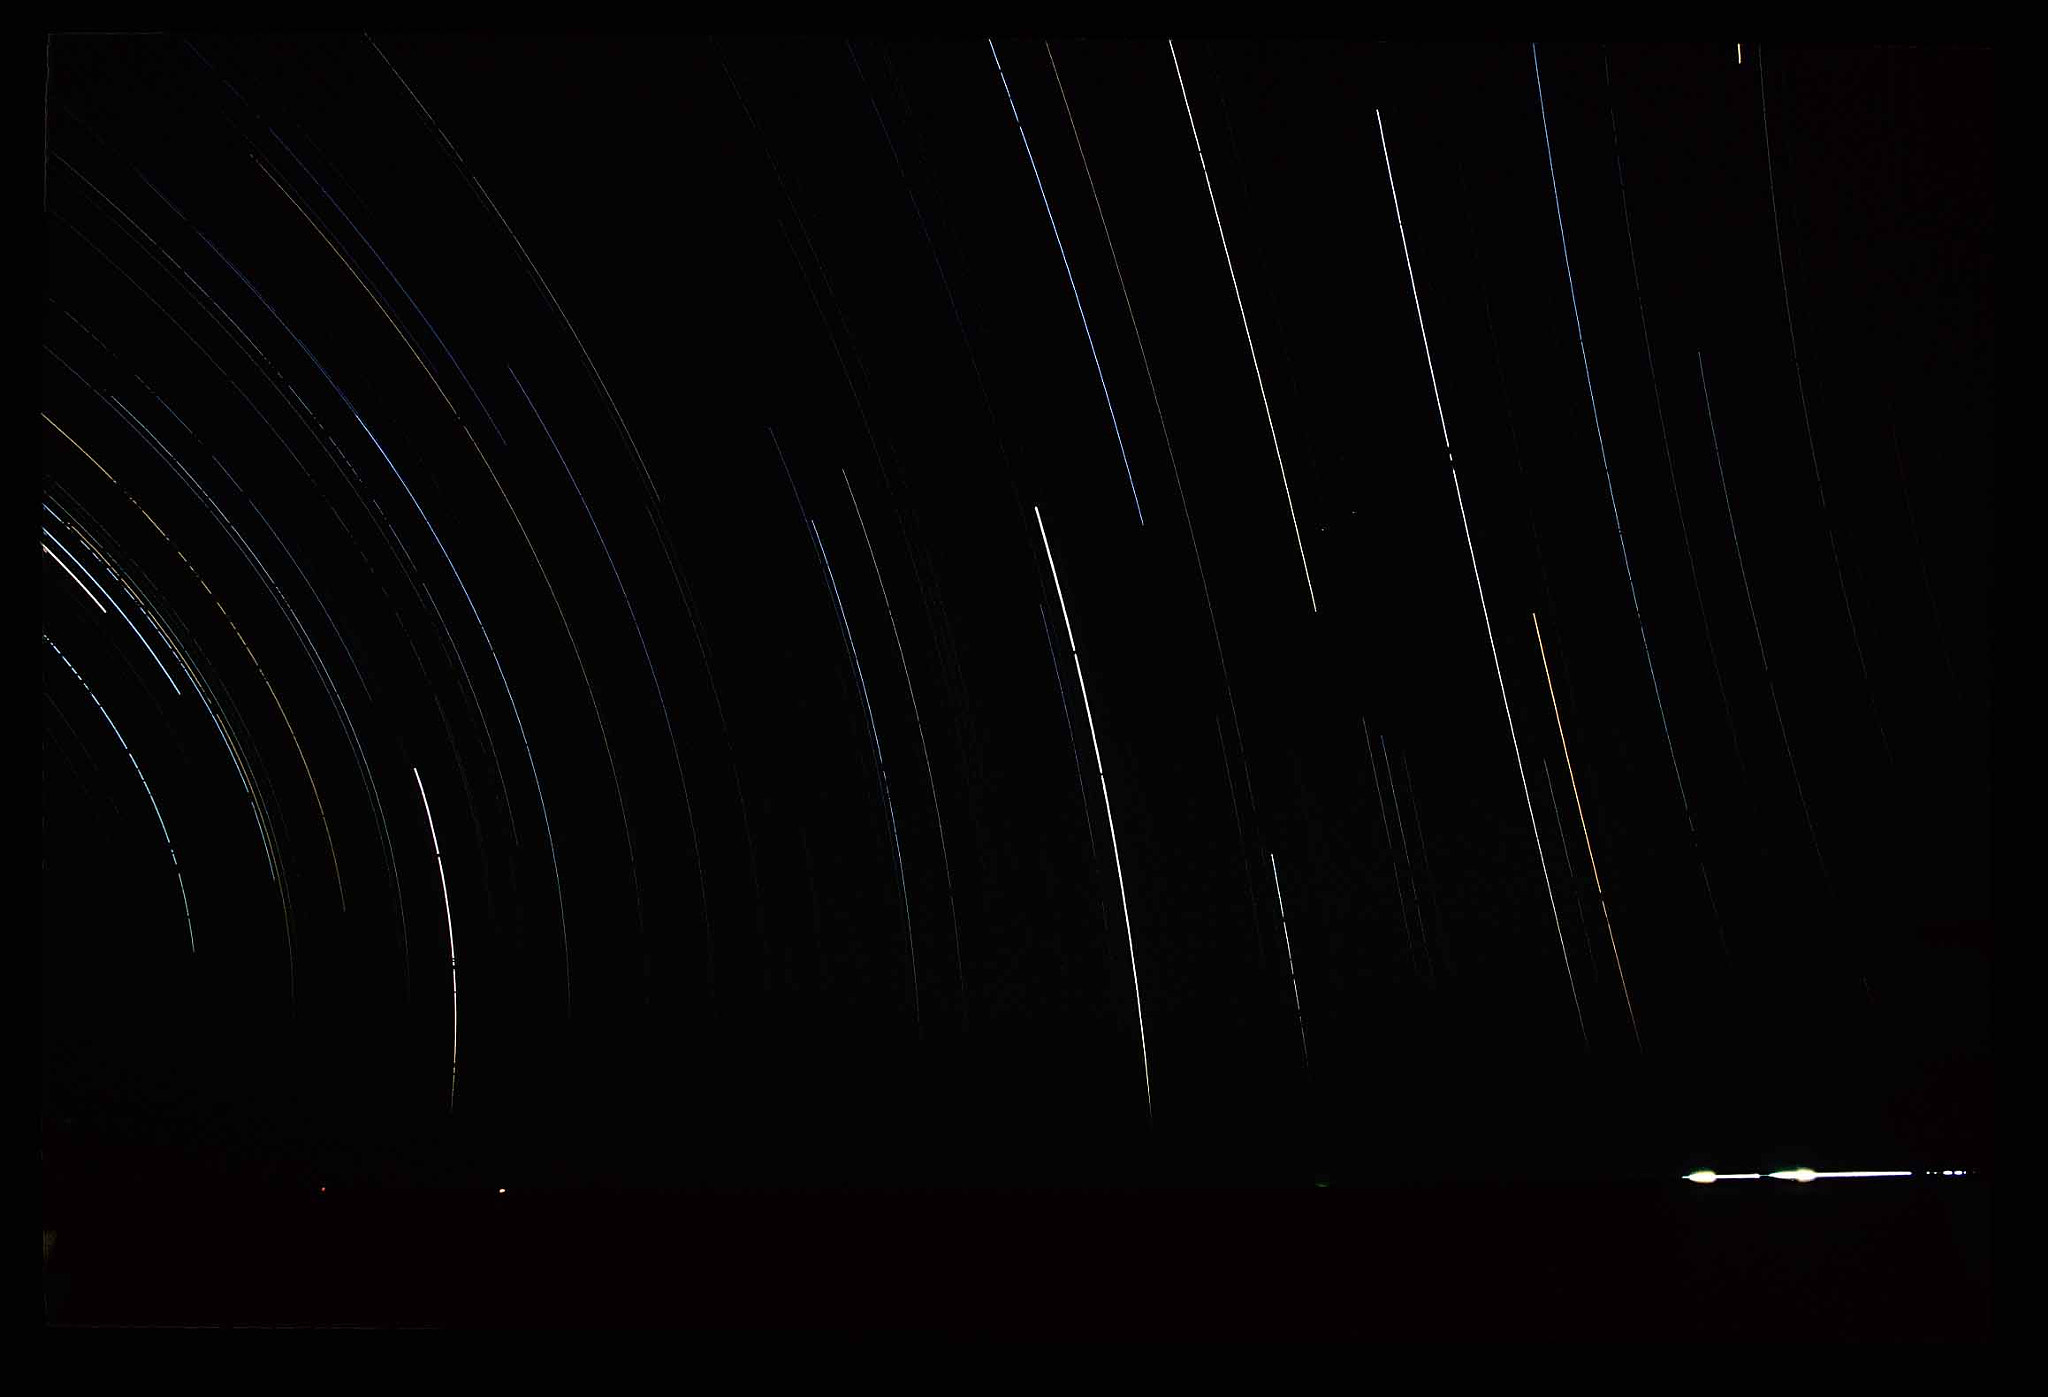 Photograph Photographing Star Trails by 介偉 陳 on 500px